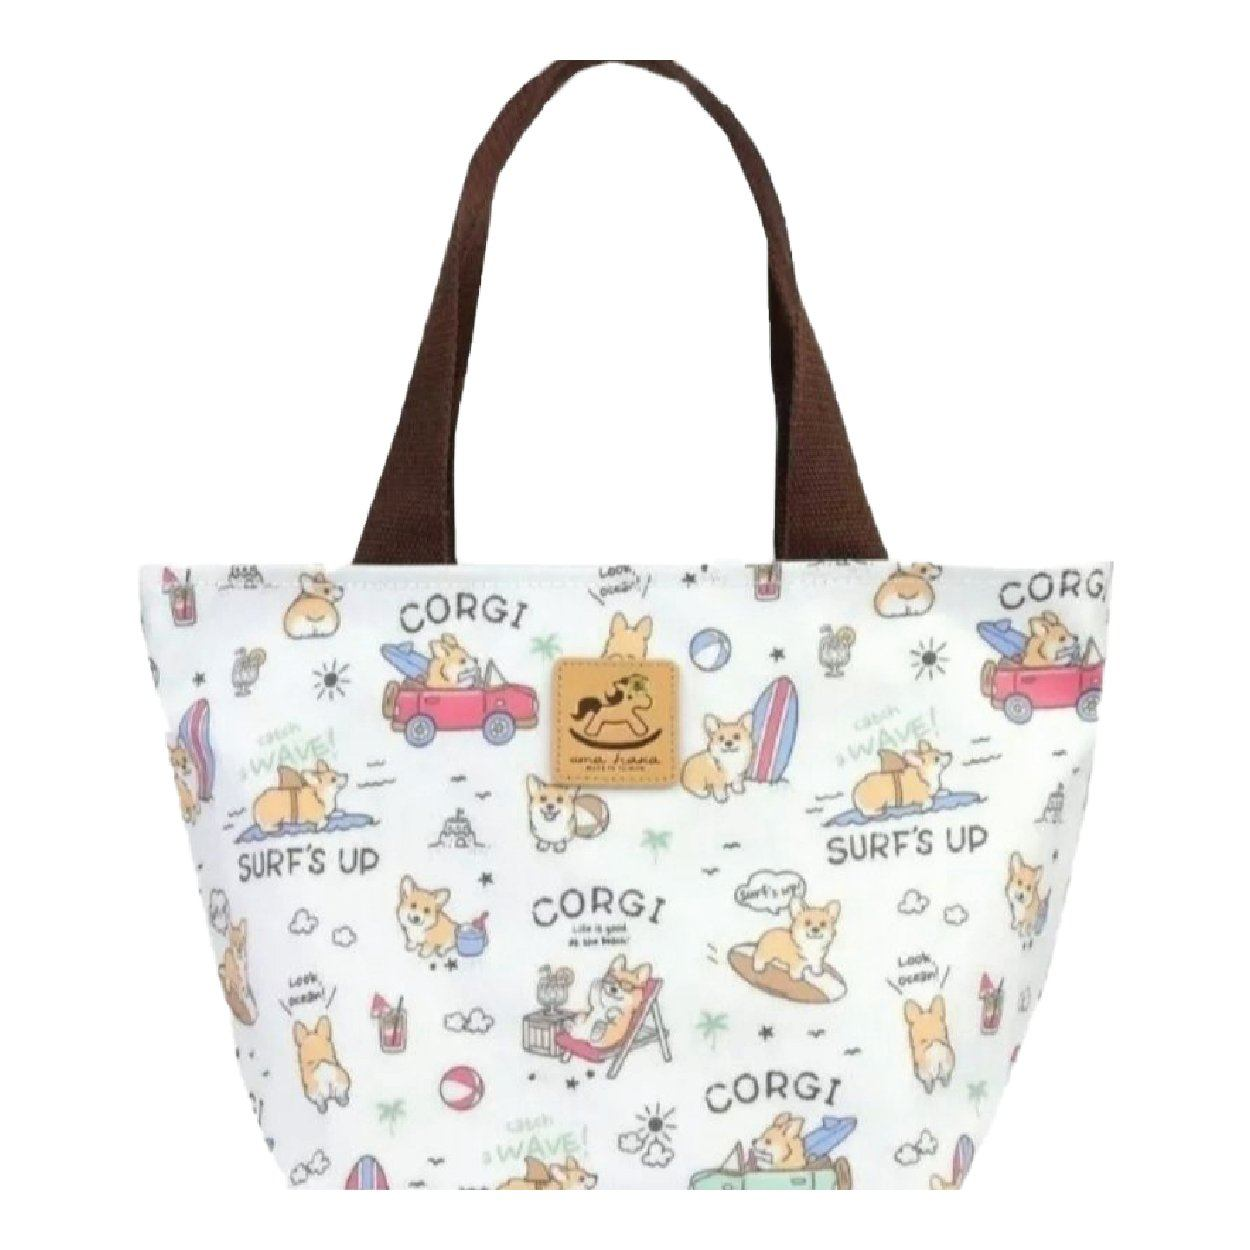 White Surfing Corgi Small Travel Bag Tote Tworgis